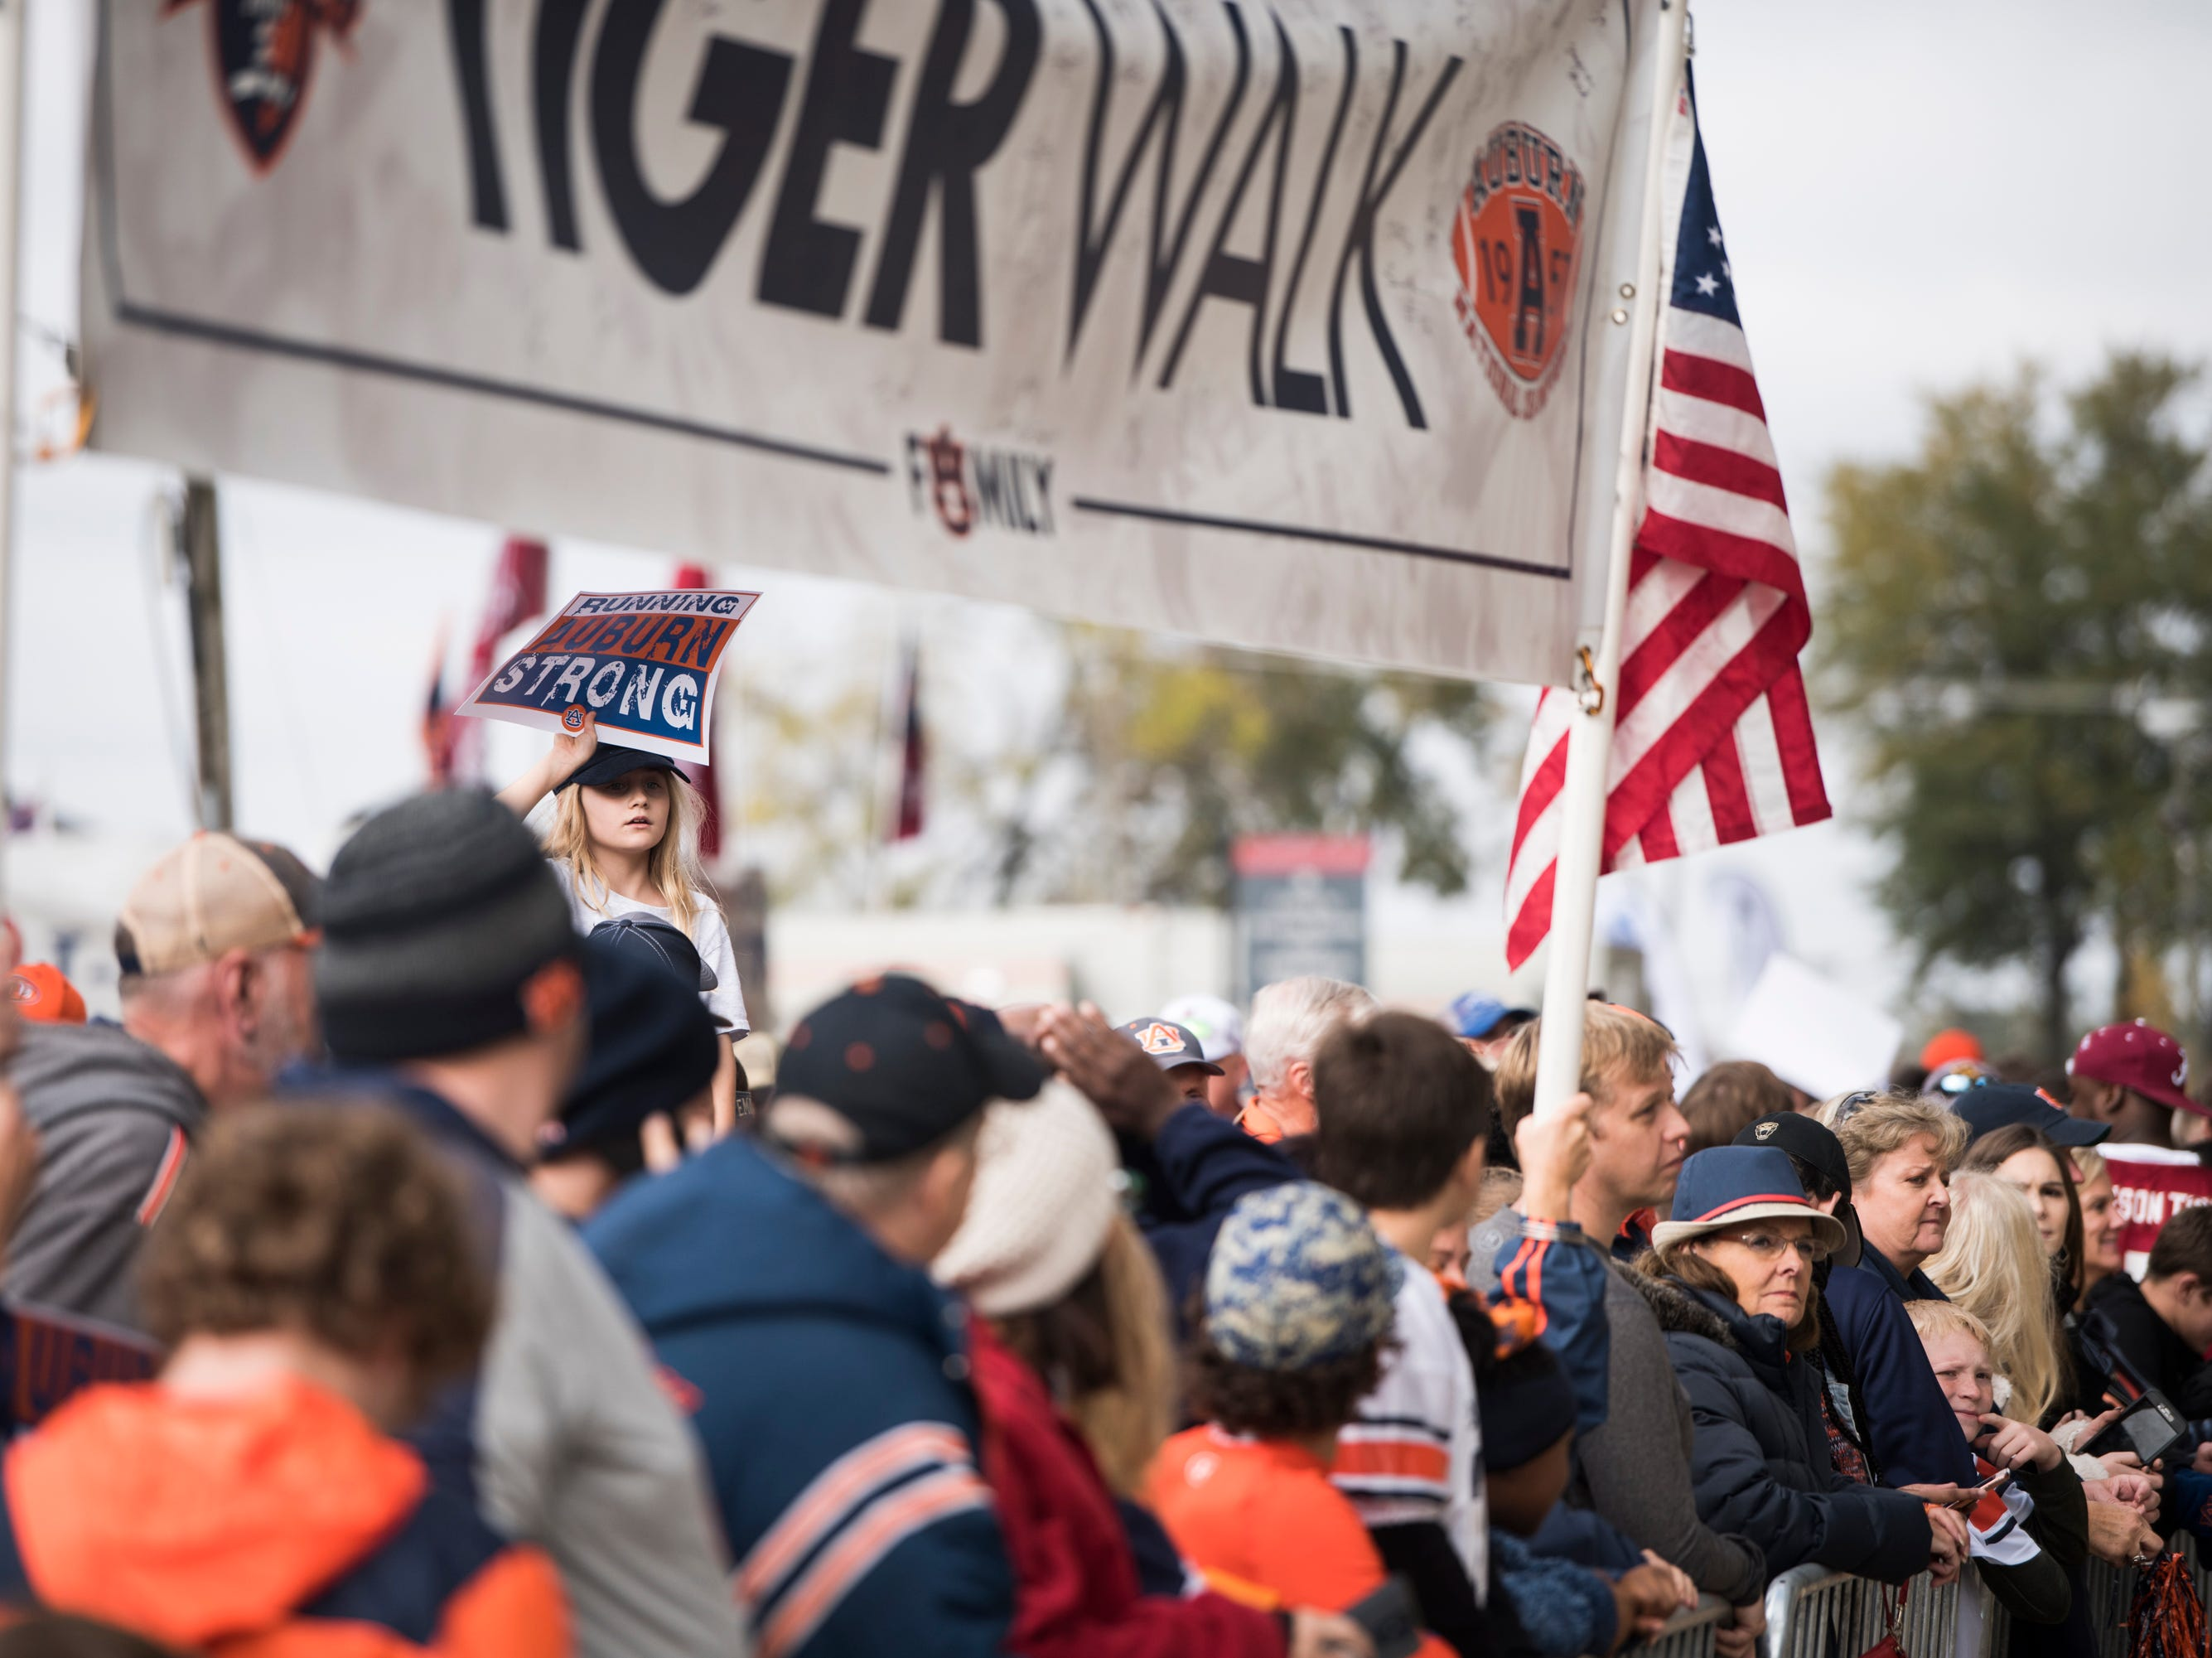 Auburn fans await the teams arrival at Bryant-Denny Stadium in Tuscaloosa, Ala., on Saturday, Nov. 24, 2018.